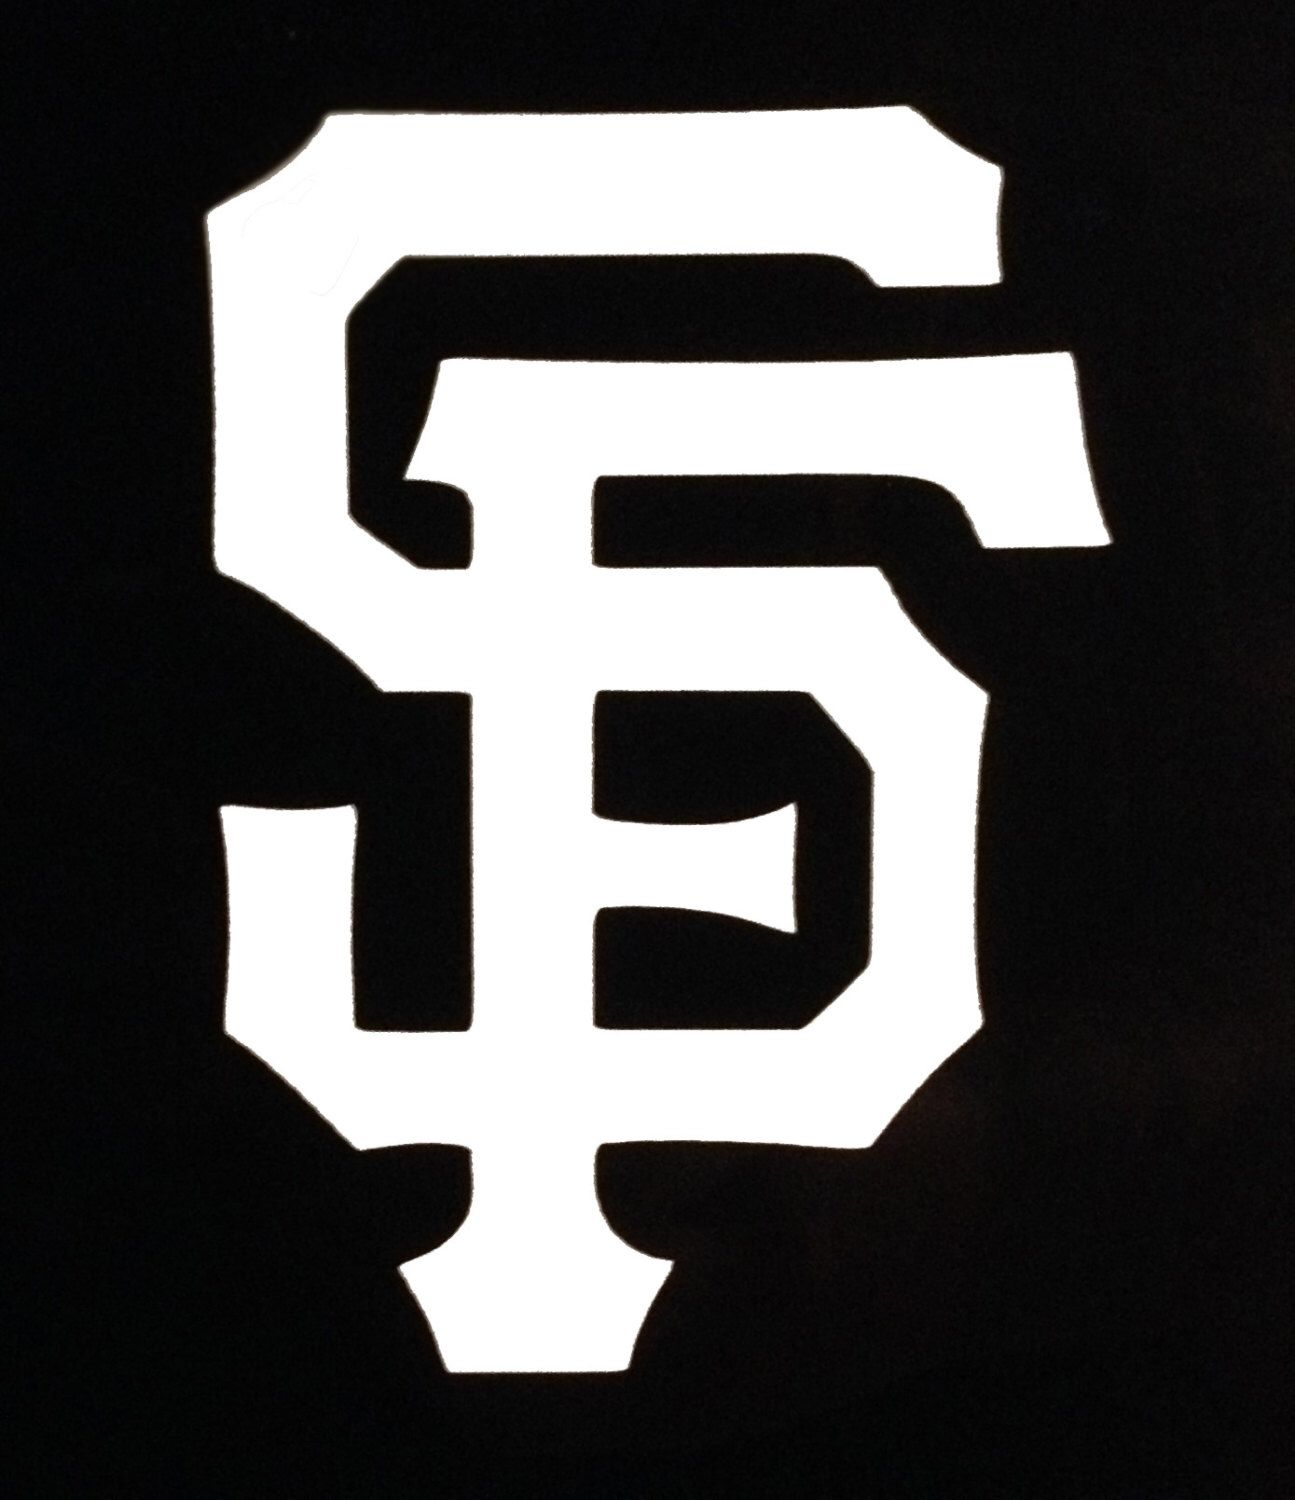 San Francisco Giants Sf Logo Small Medium Etsy Giants Baseball Mlb Giants San Francisco Giants